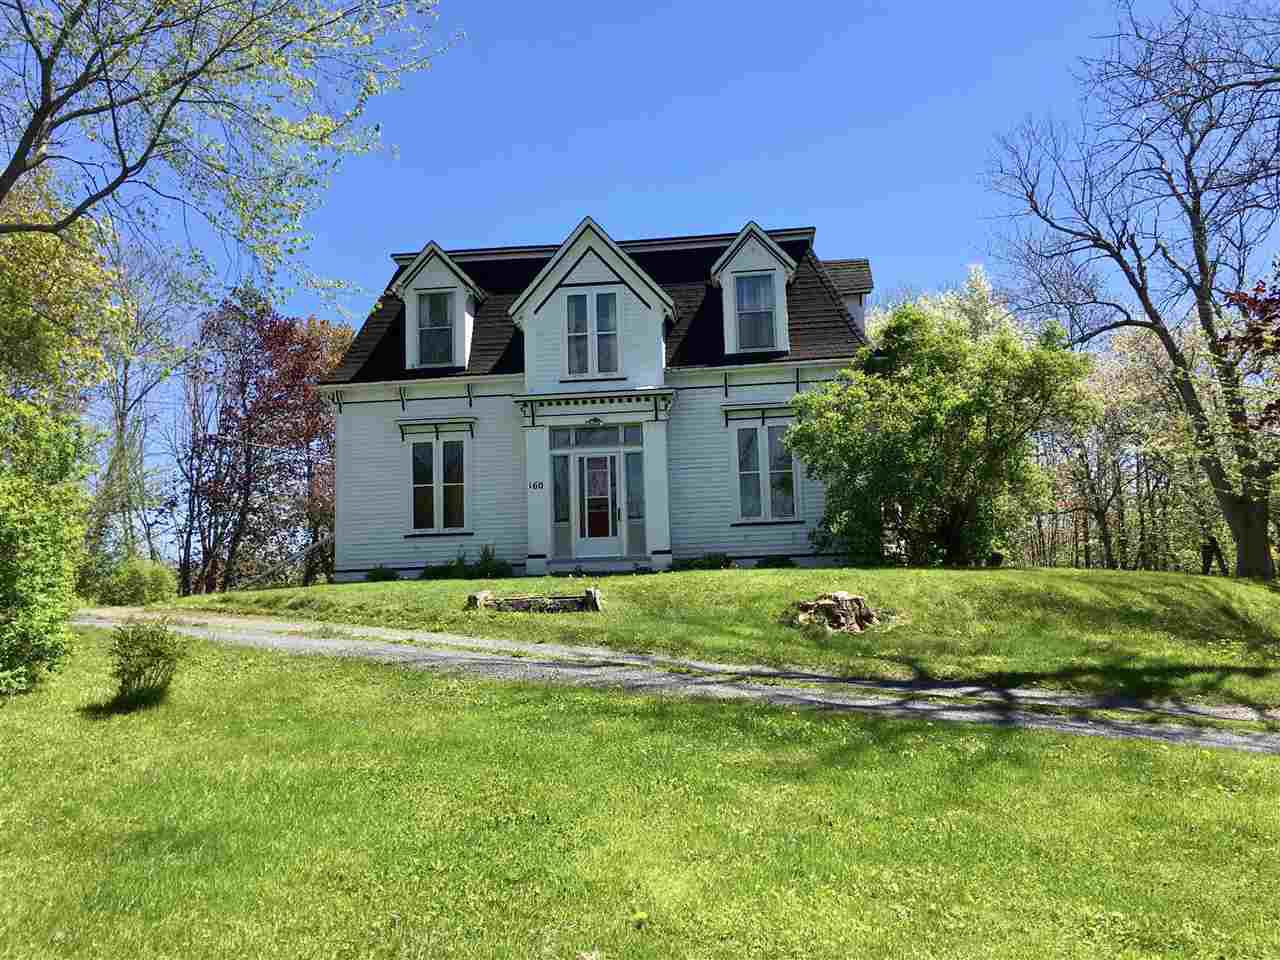 Main Photo: 160 Patterson Street in Pictou: 107-Trenton,Westville,Pictou Residential for sale (Northern Region)  : MLS®# 201812947